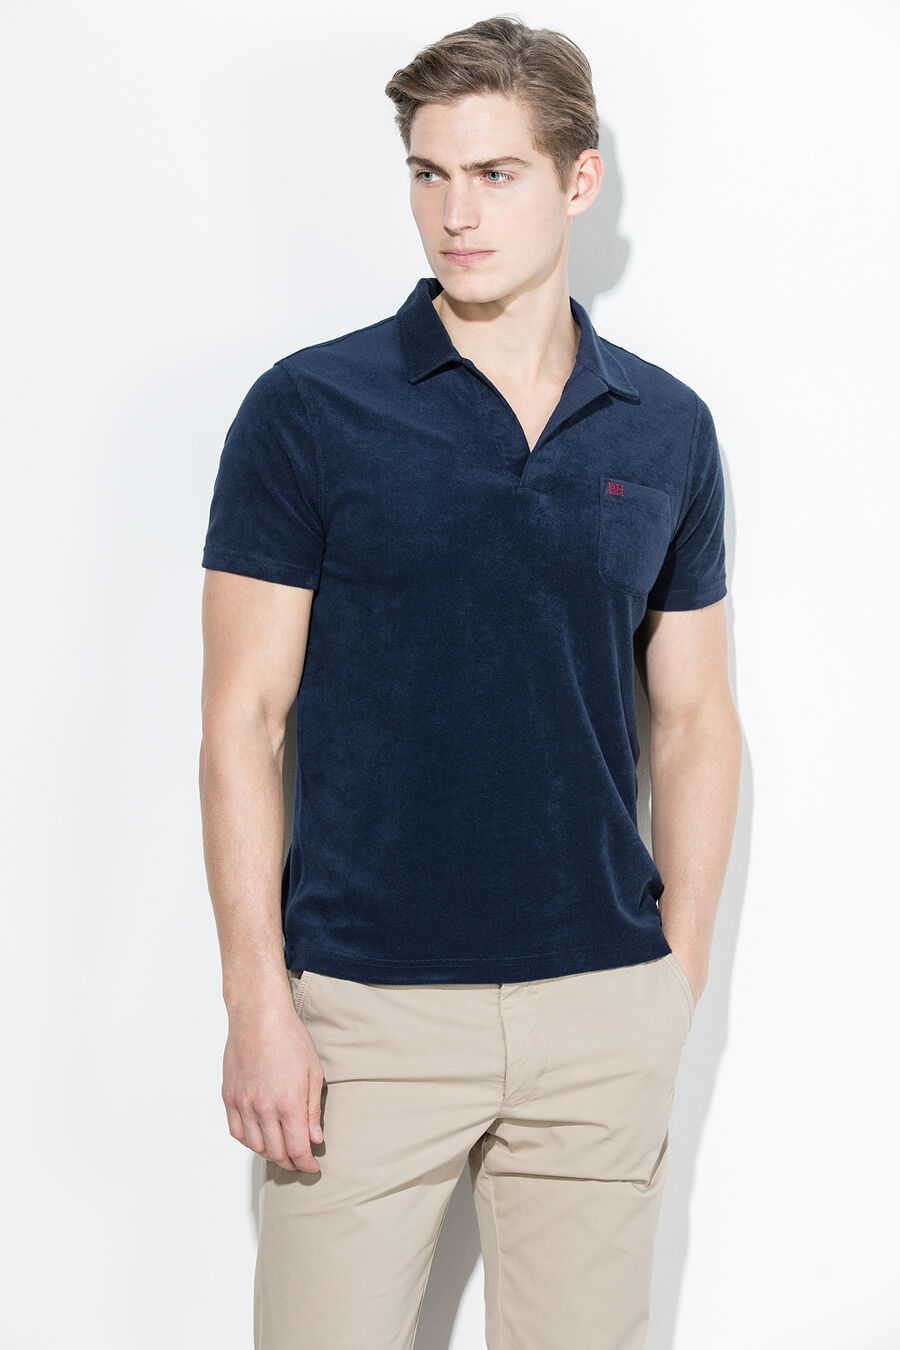 PdH terry polo shirt